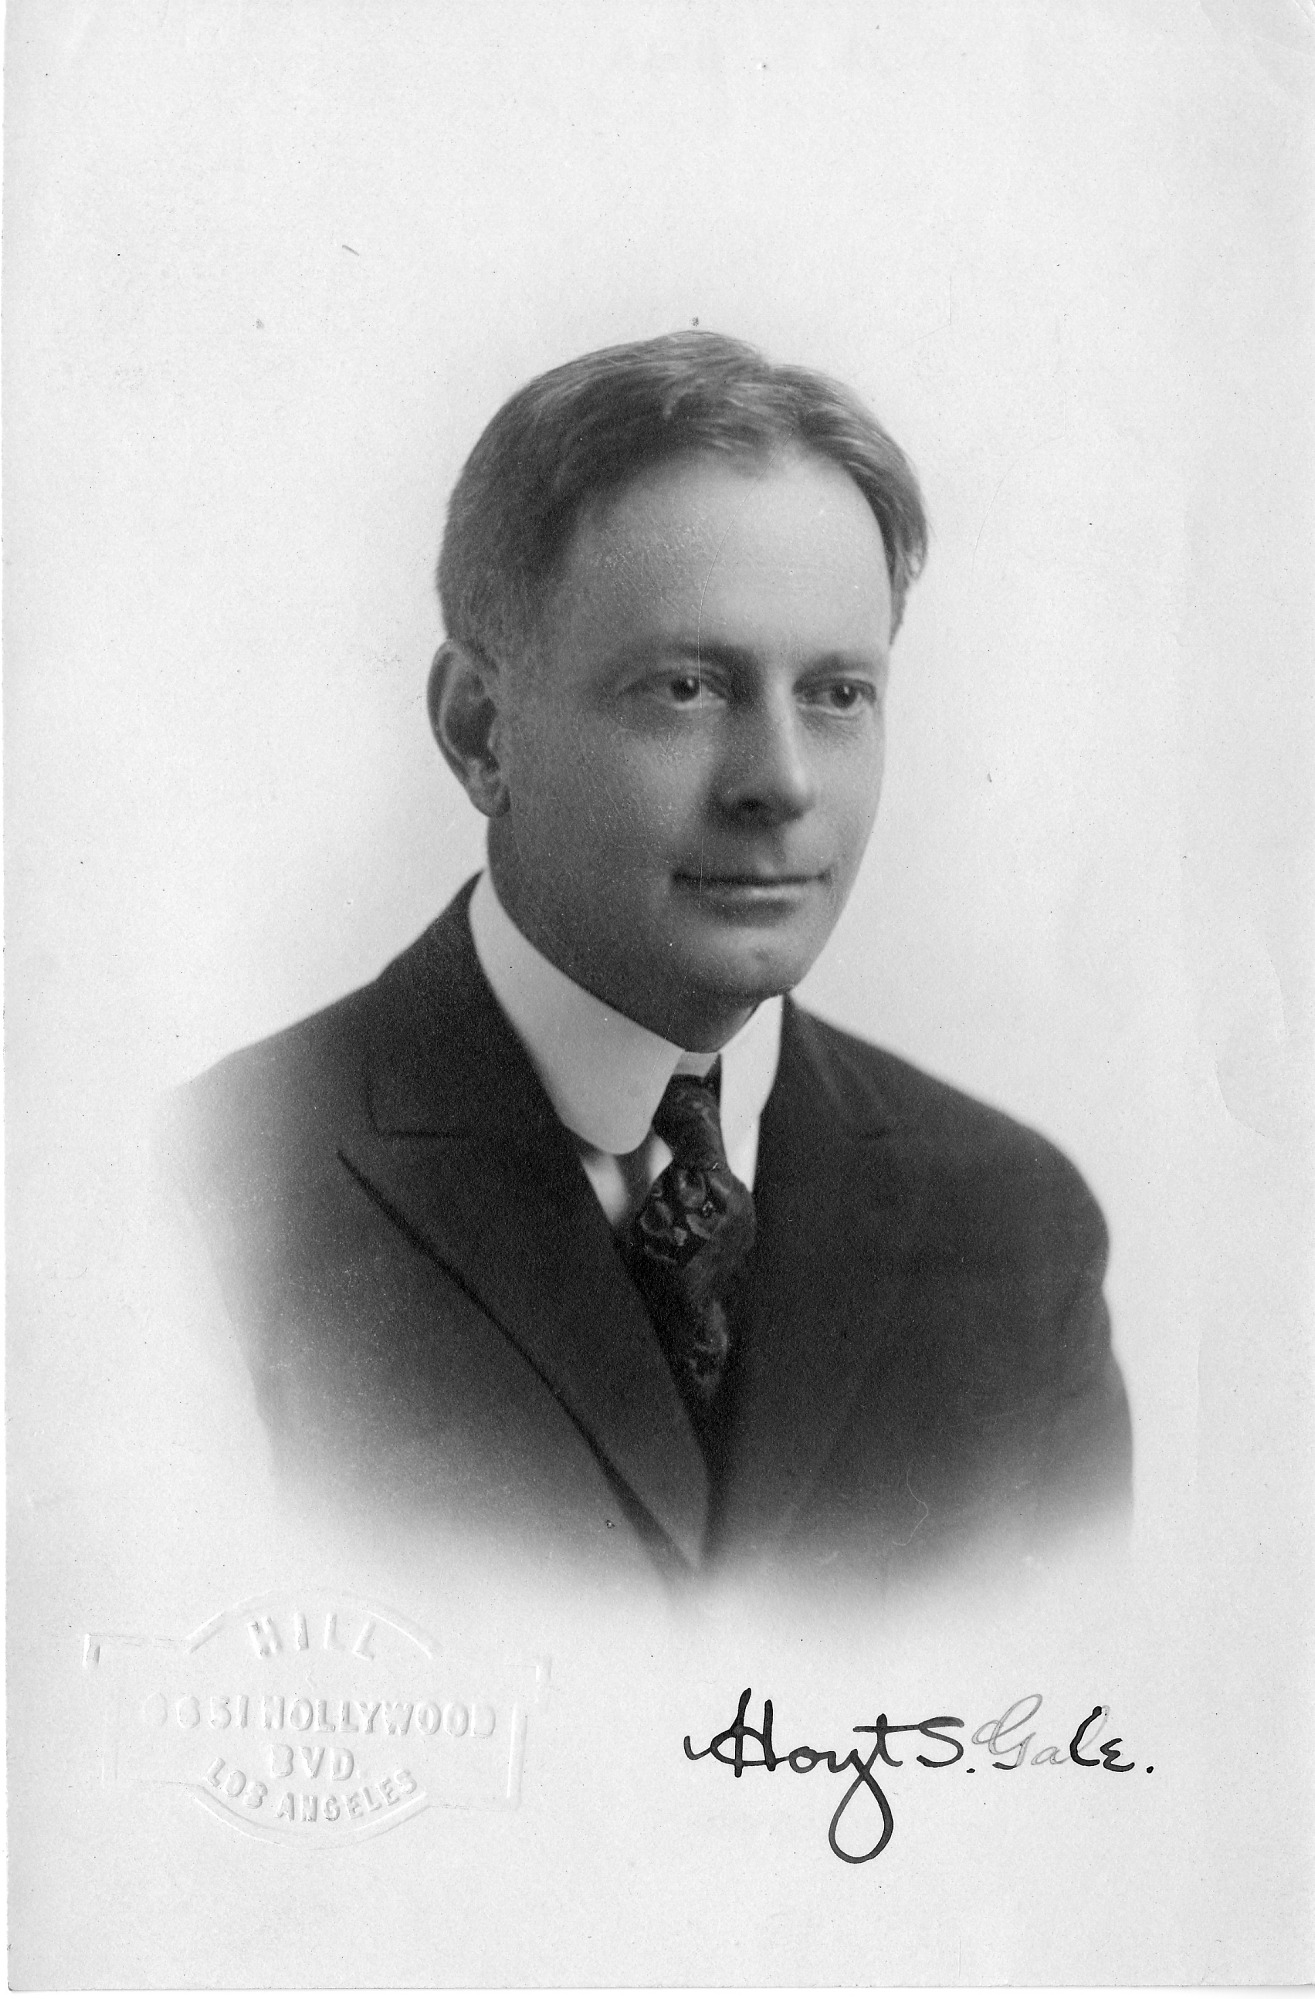 Hoyt Stoddard Gale (1876-1952), Smithsonian Institution Archives, SIA Acc. 90-105 [SIA2008-1782].